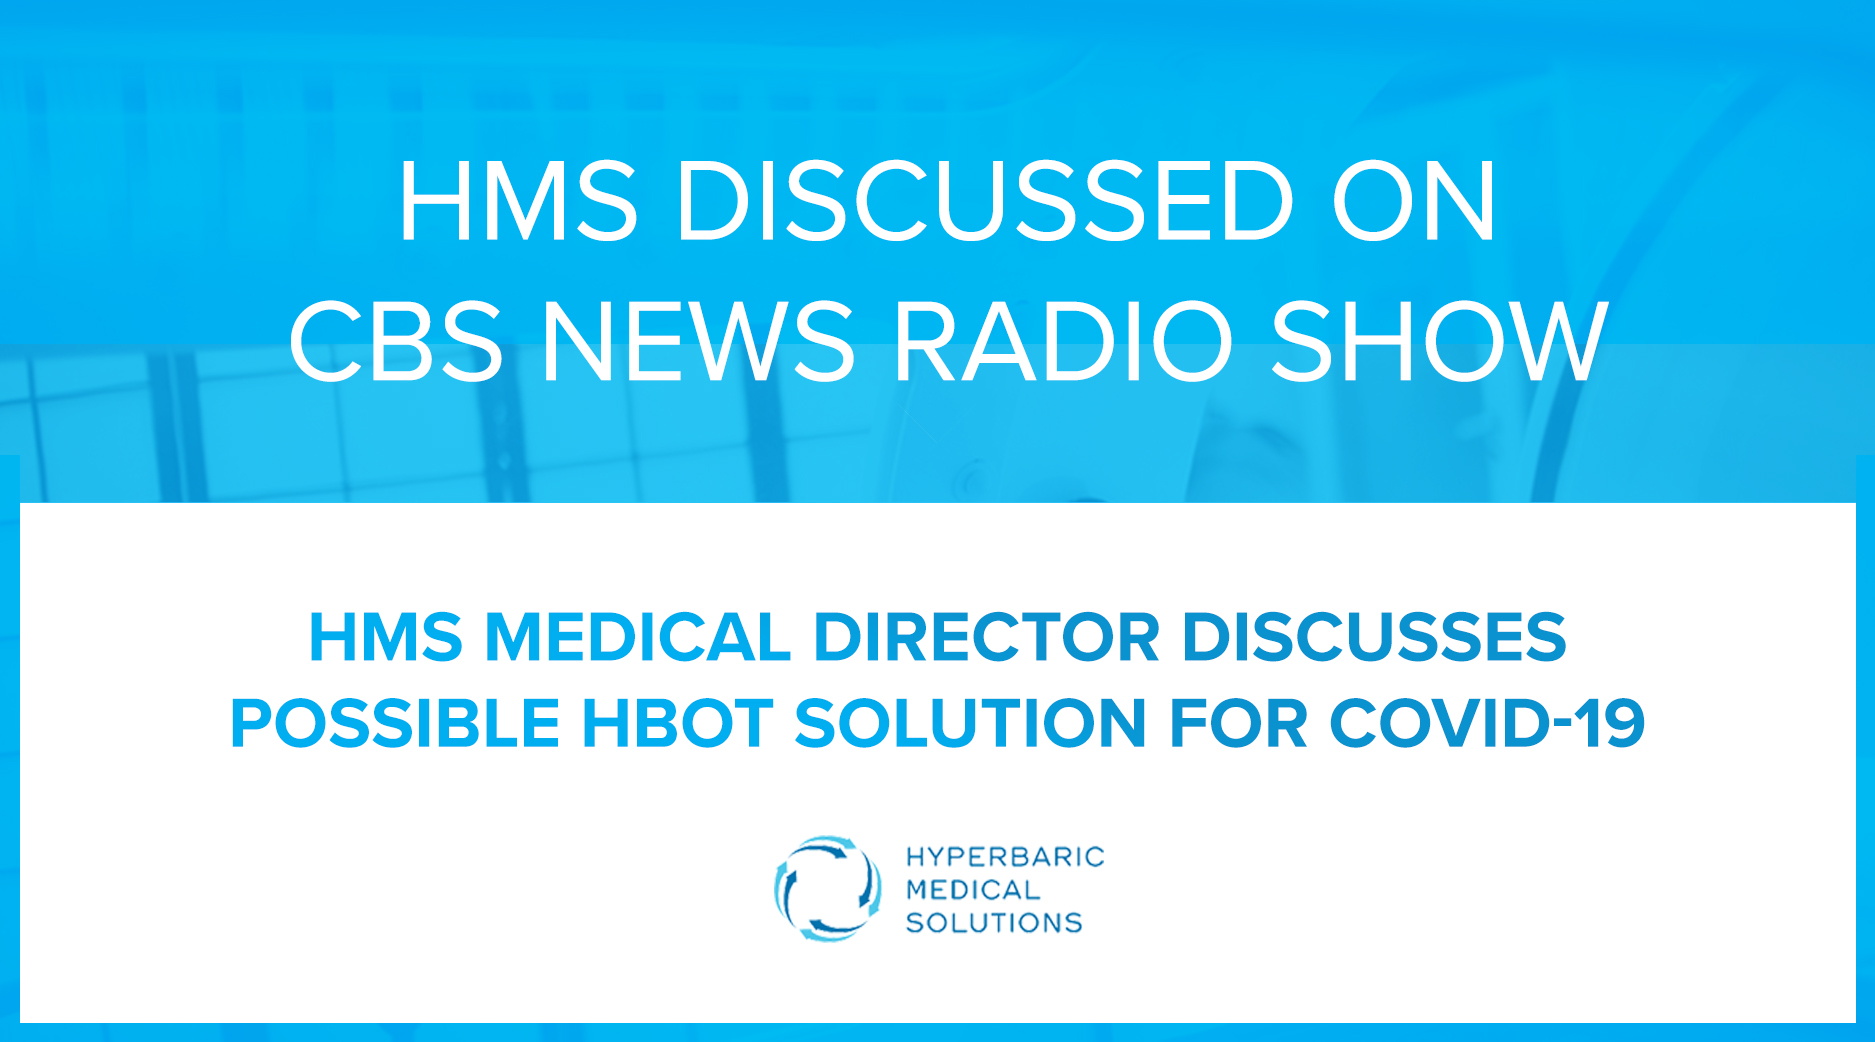 HMS-Medical-Director-Discusses-HBOT-As-Possible-Solution-For-COVID-19-On-CBS-News-Radio-Show-KNX-In-Depth---Text-Graphic